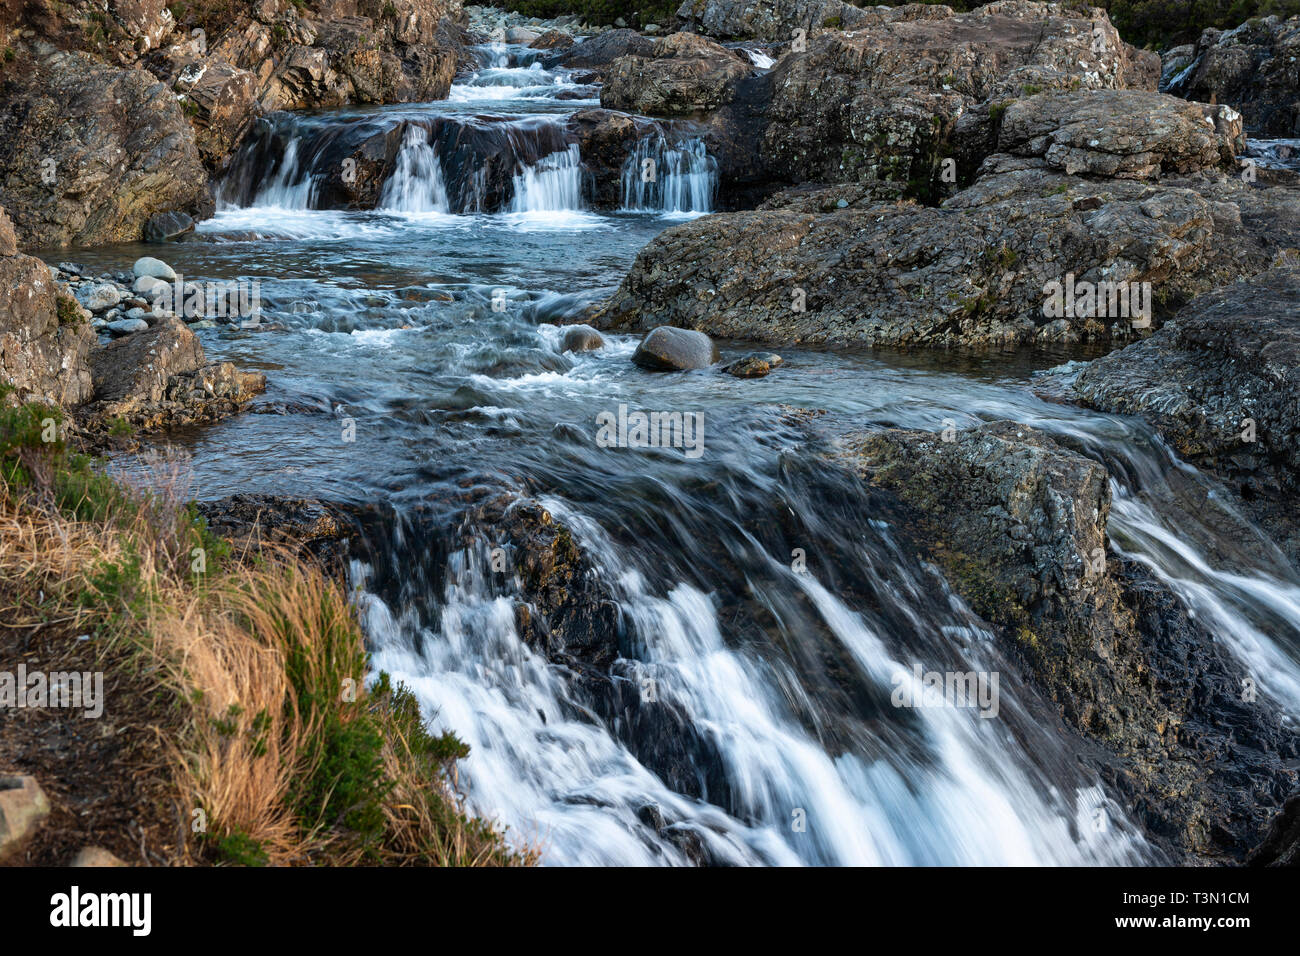 Fairy Pools on the River Brittle, Isle of Skye, Highland Region, Scotland, UK - Stock Image